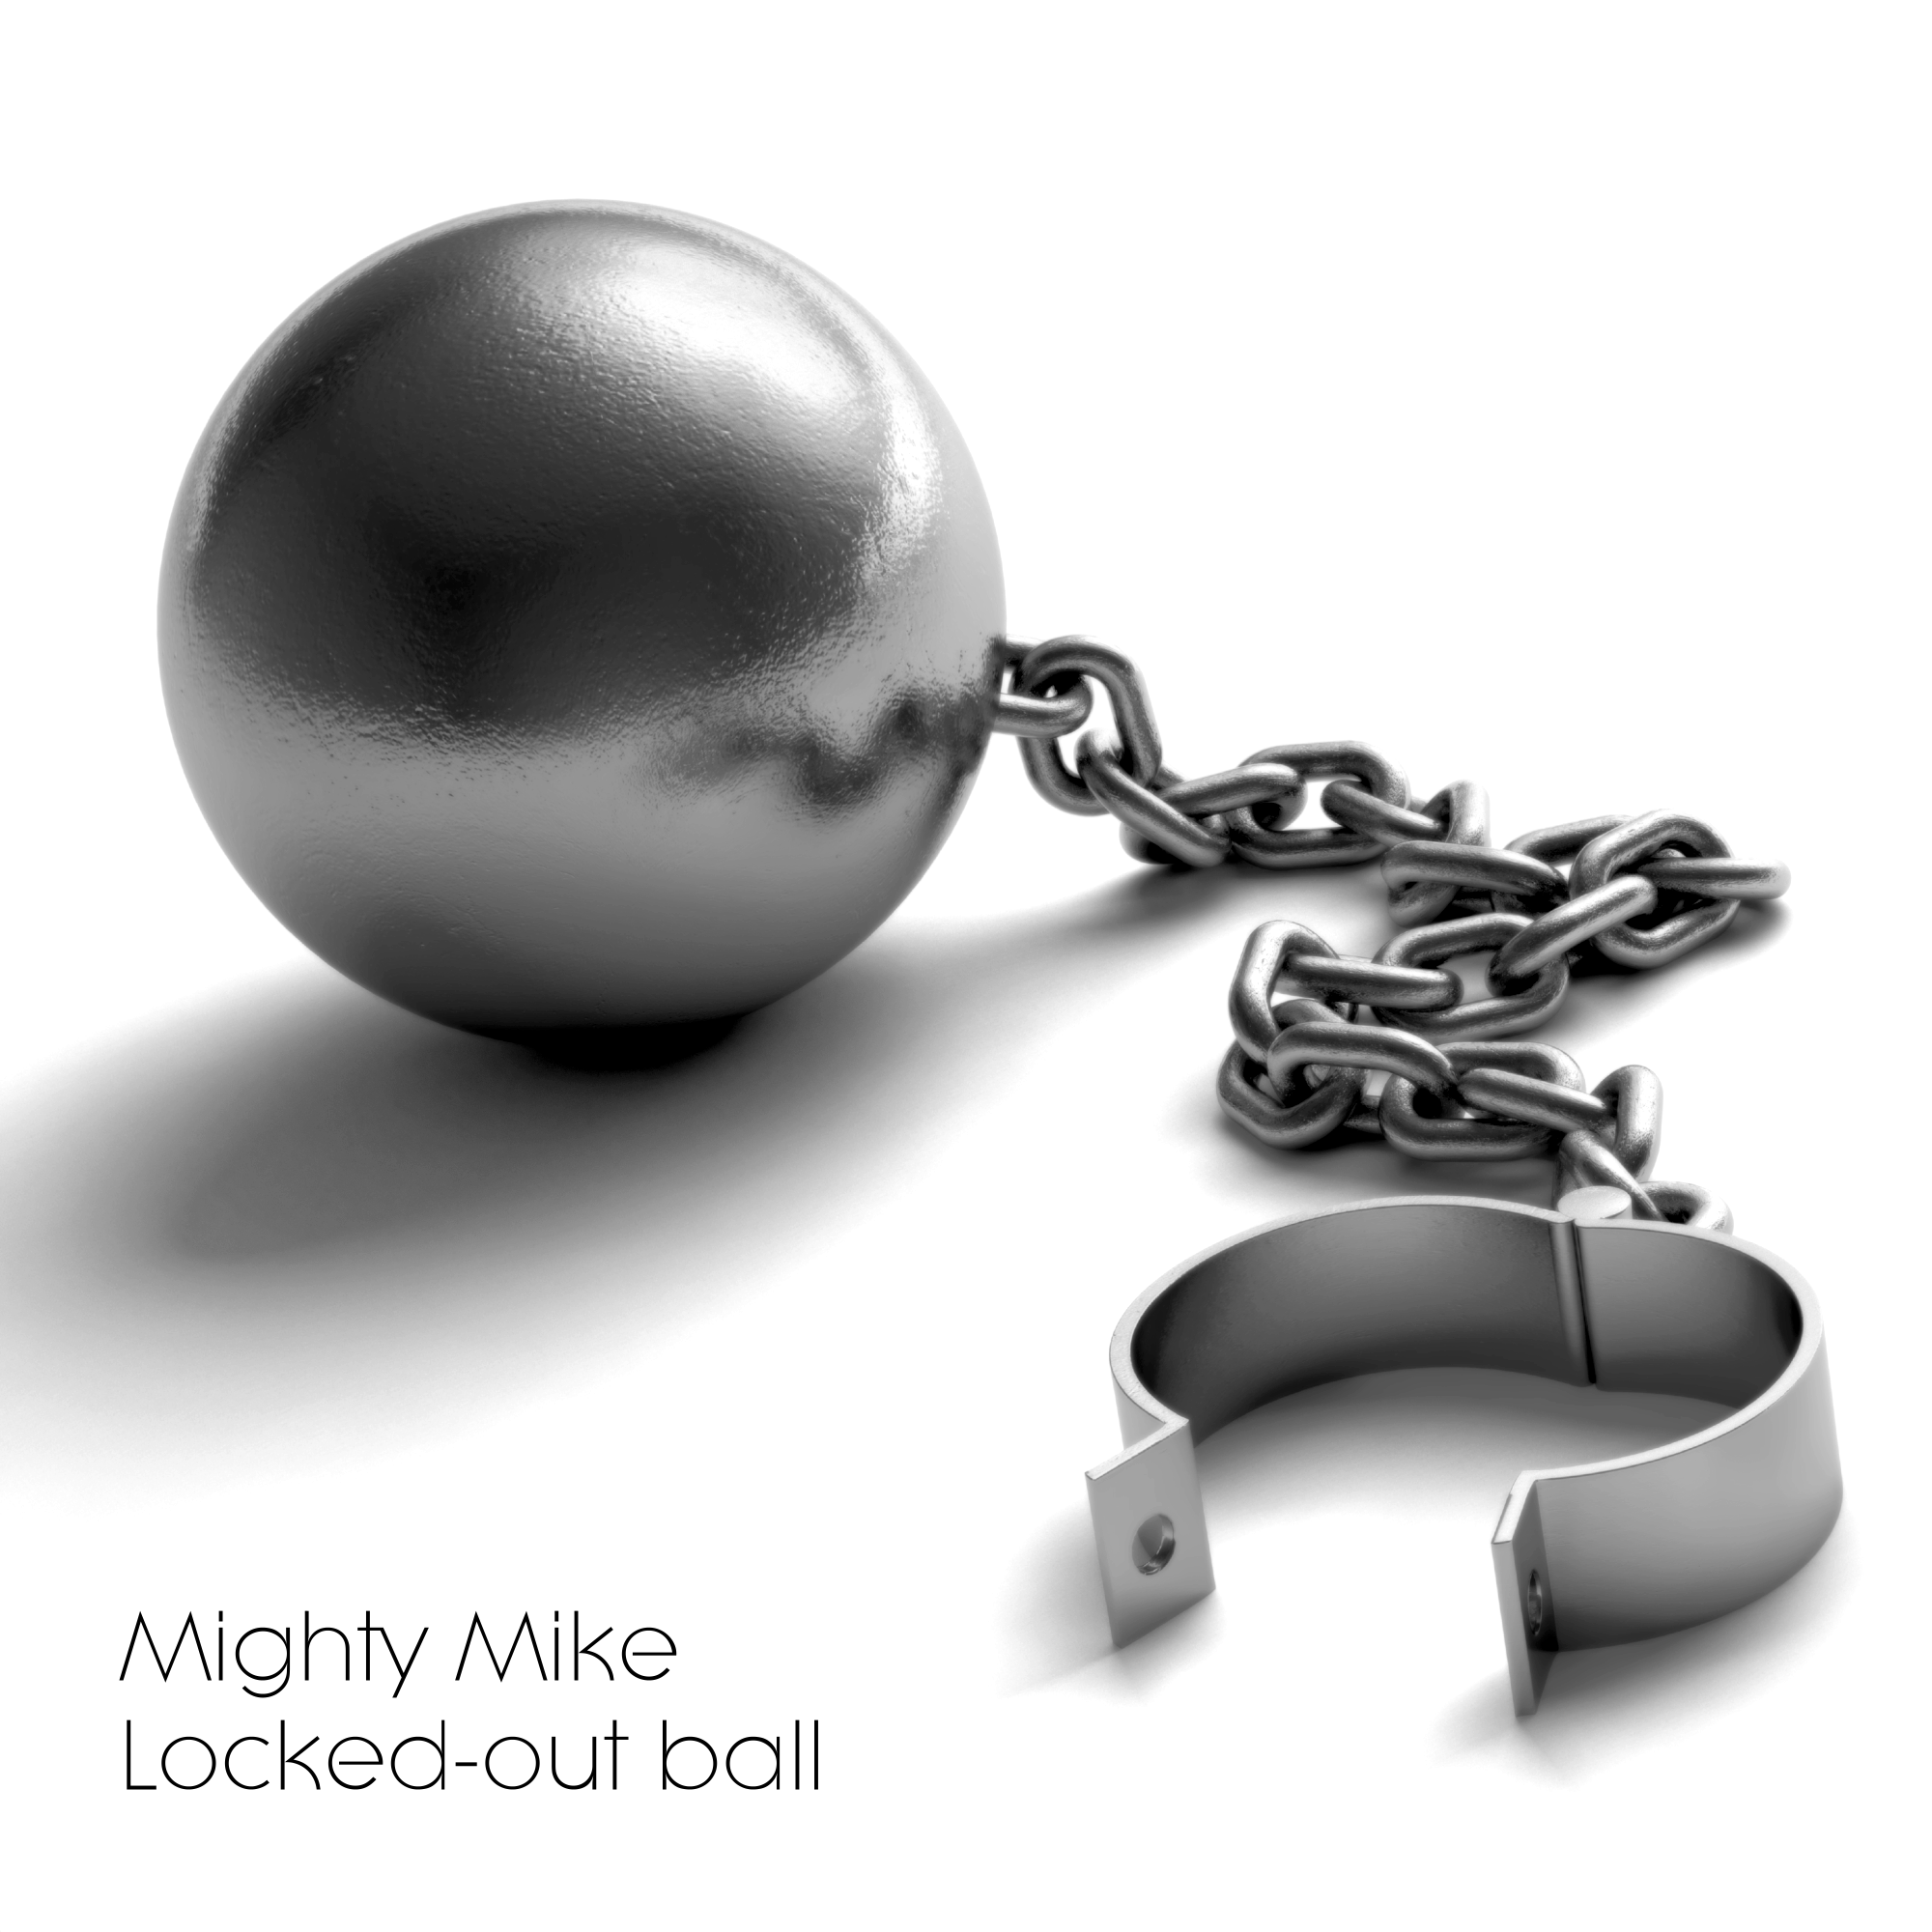 Locked-out ball (Miley Cyrus / Bruno Mars) (2014)